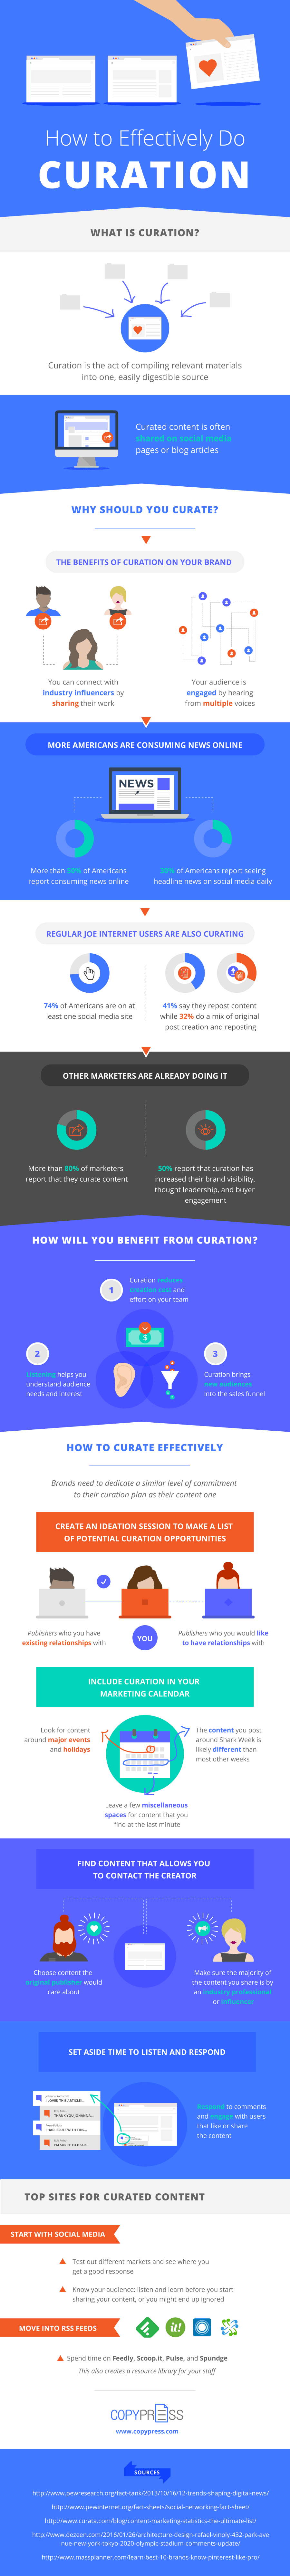 content-curation-infographic-full